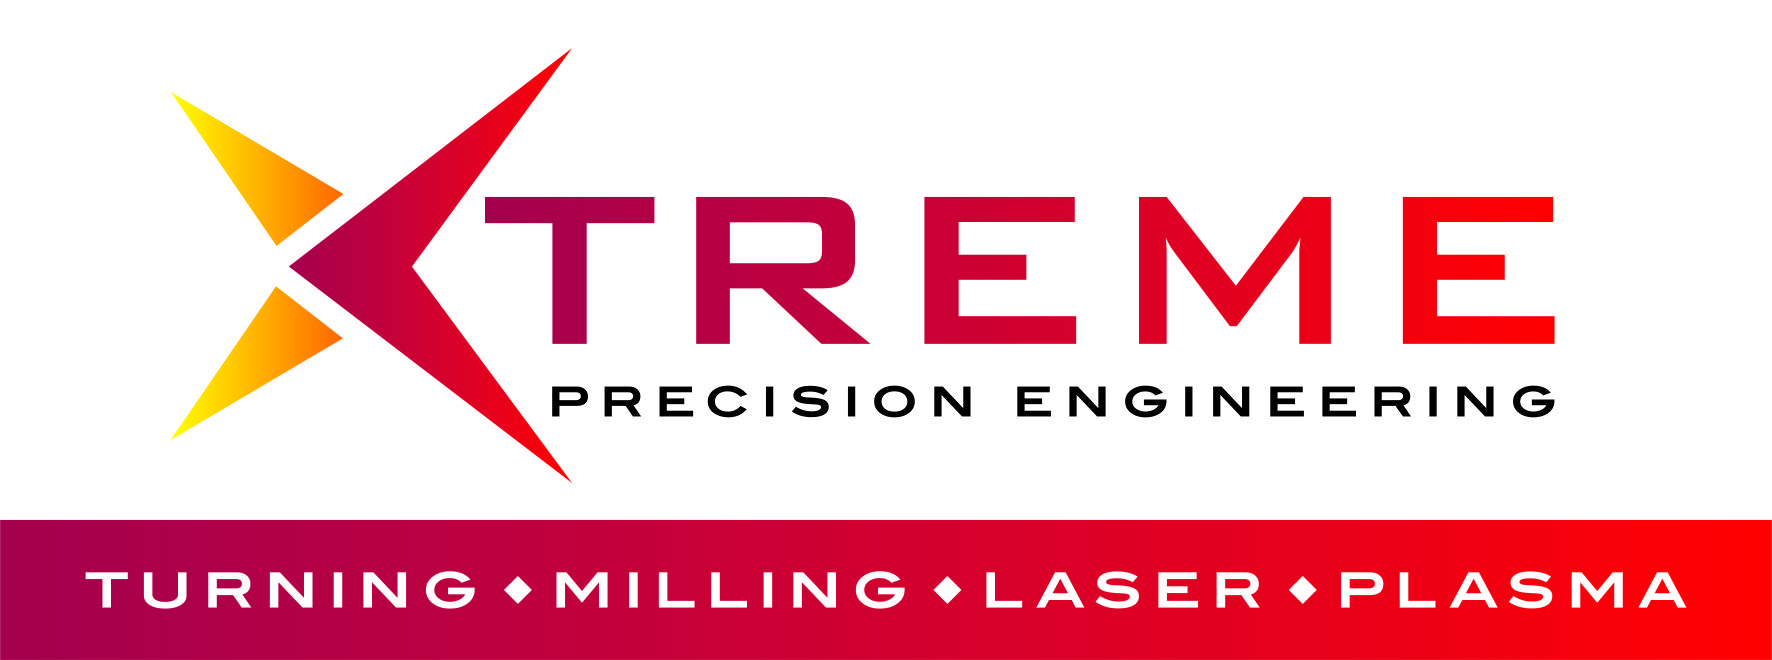 Xtreme Precision Engineering Ltd.